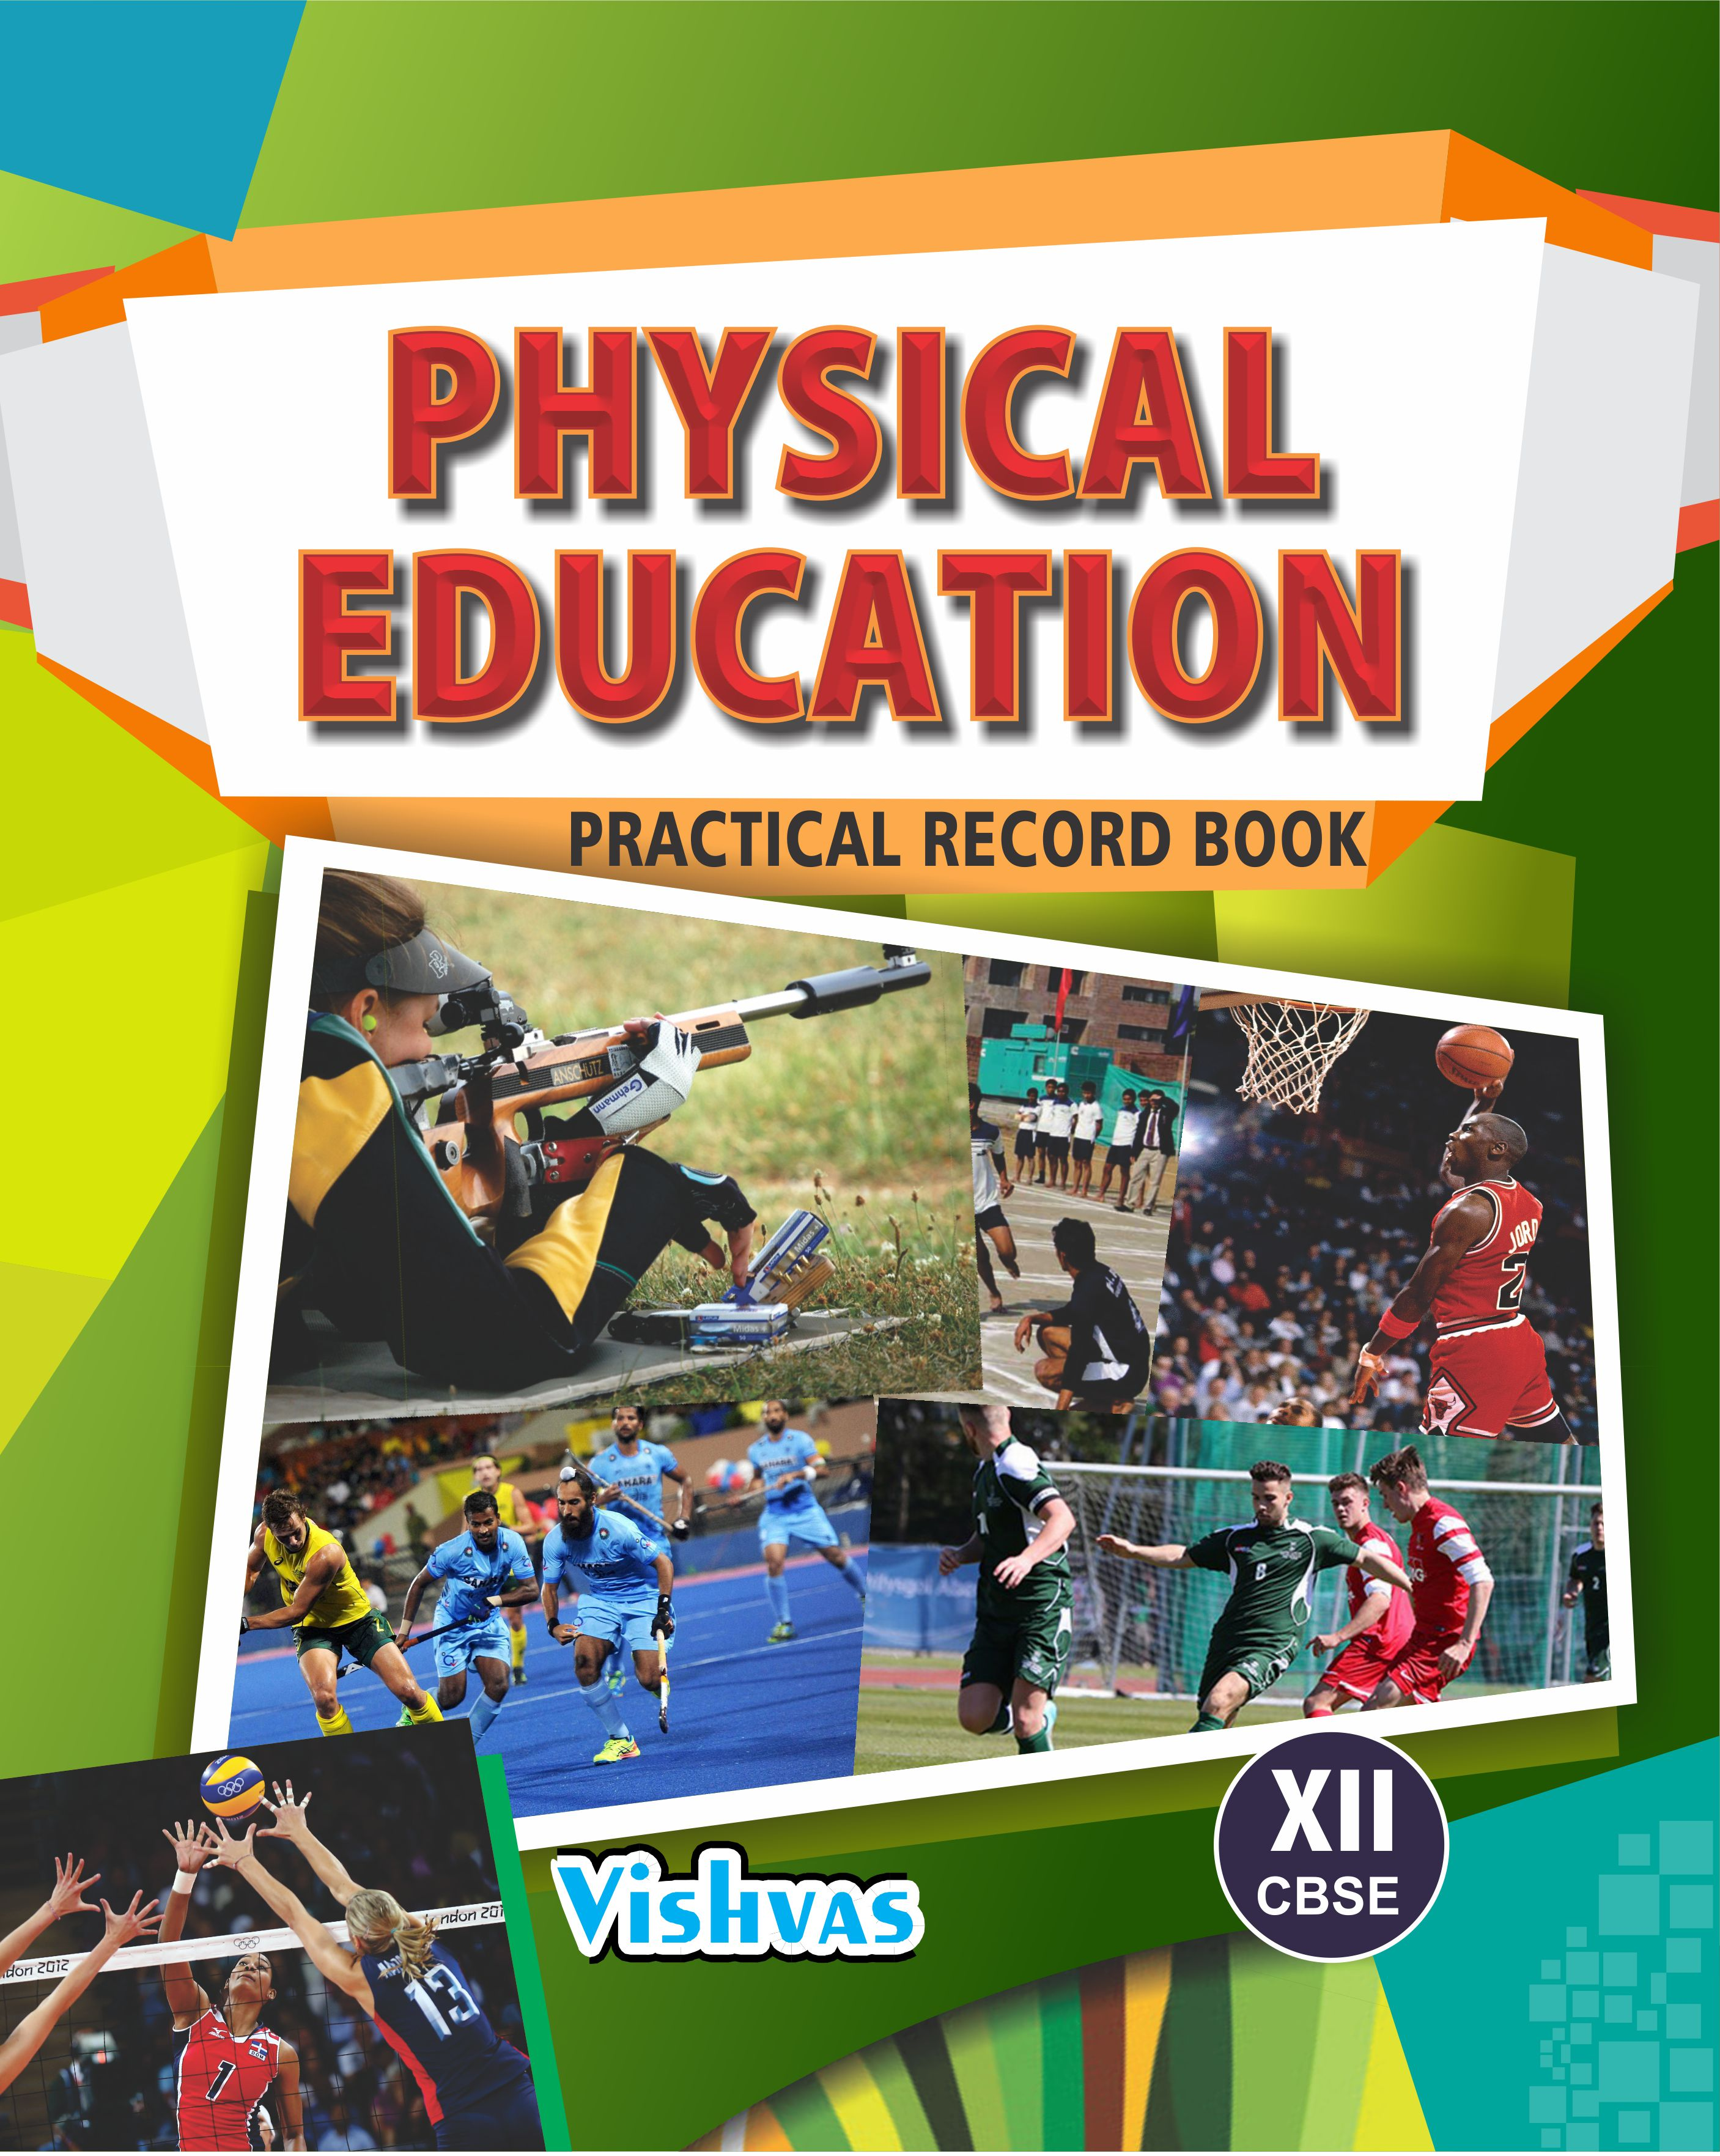 Cbse 2018 physical education class xii practical record book physical education practical record book xiicbse 2017 malvernweather Image collections